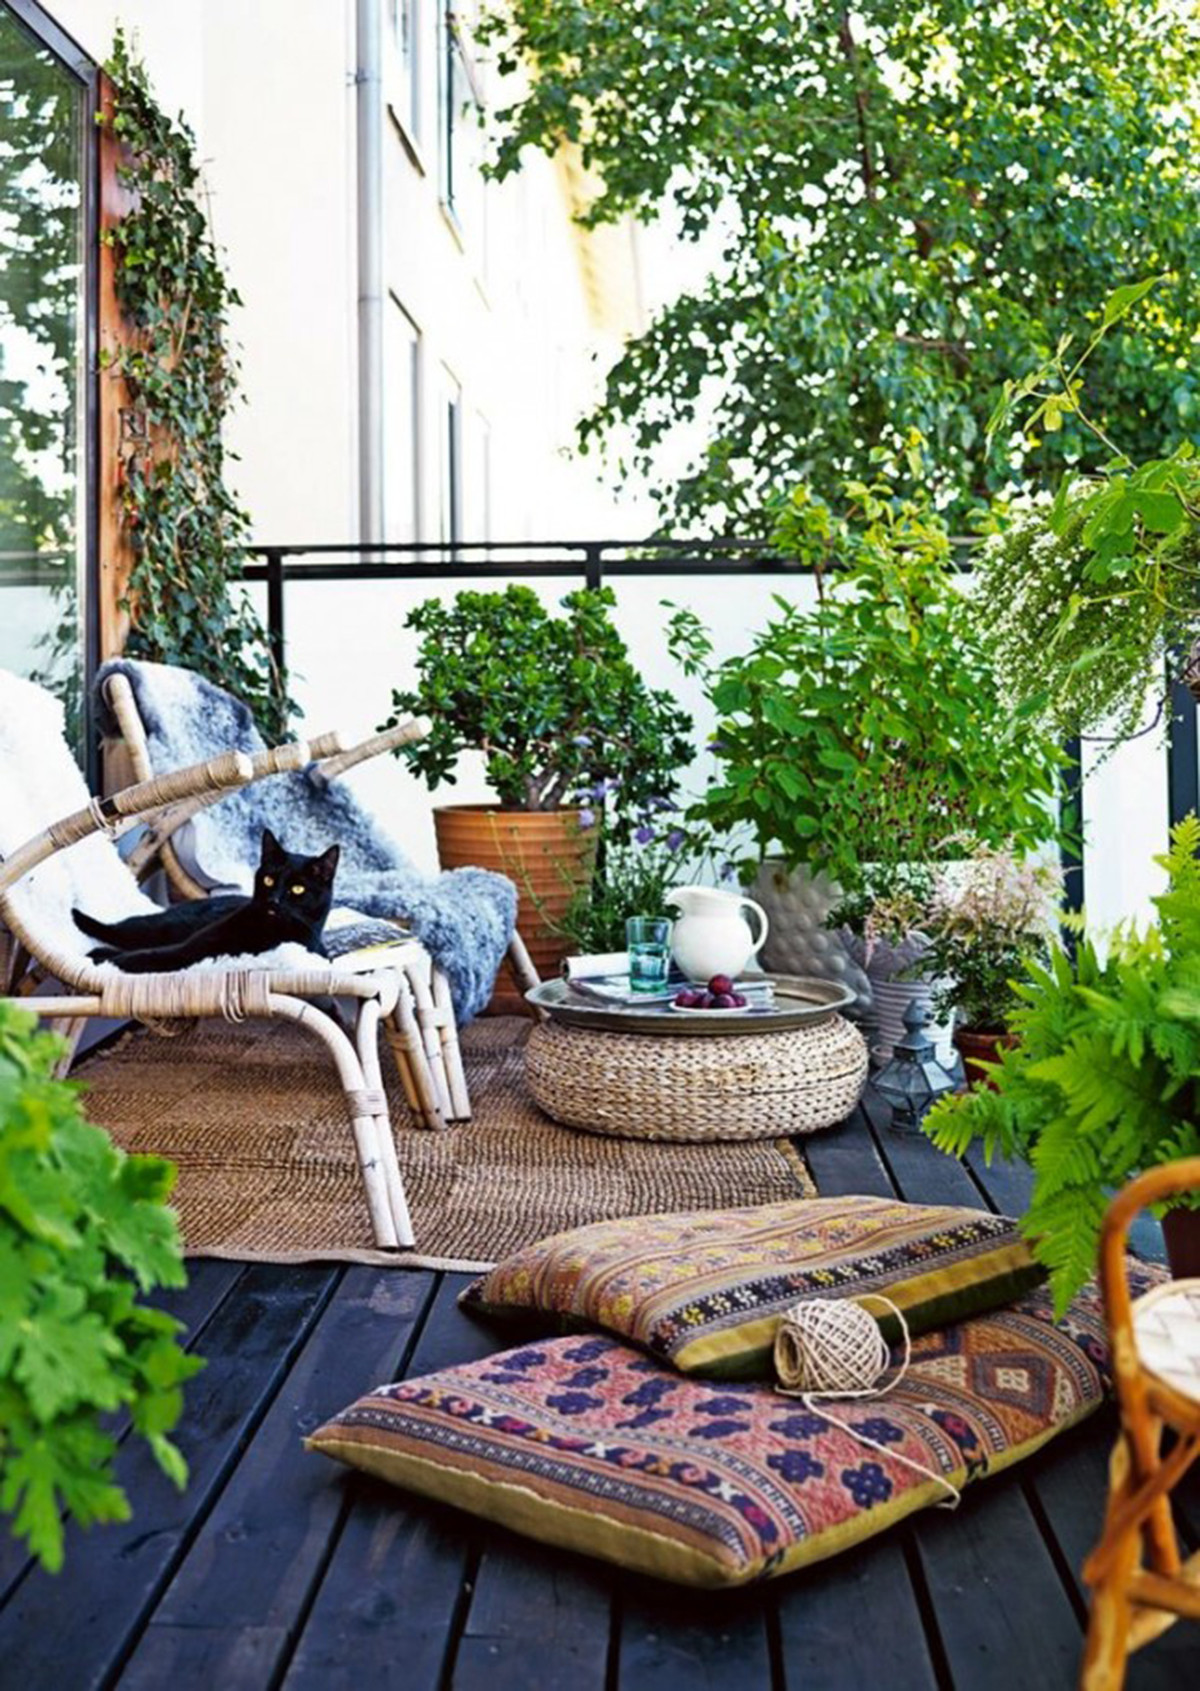 Blooming balcony garden that obscures the space